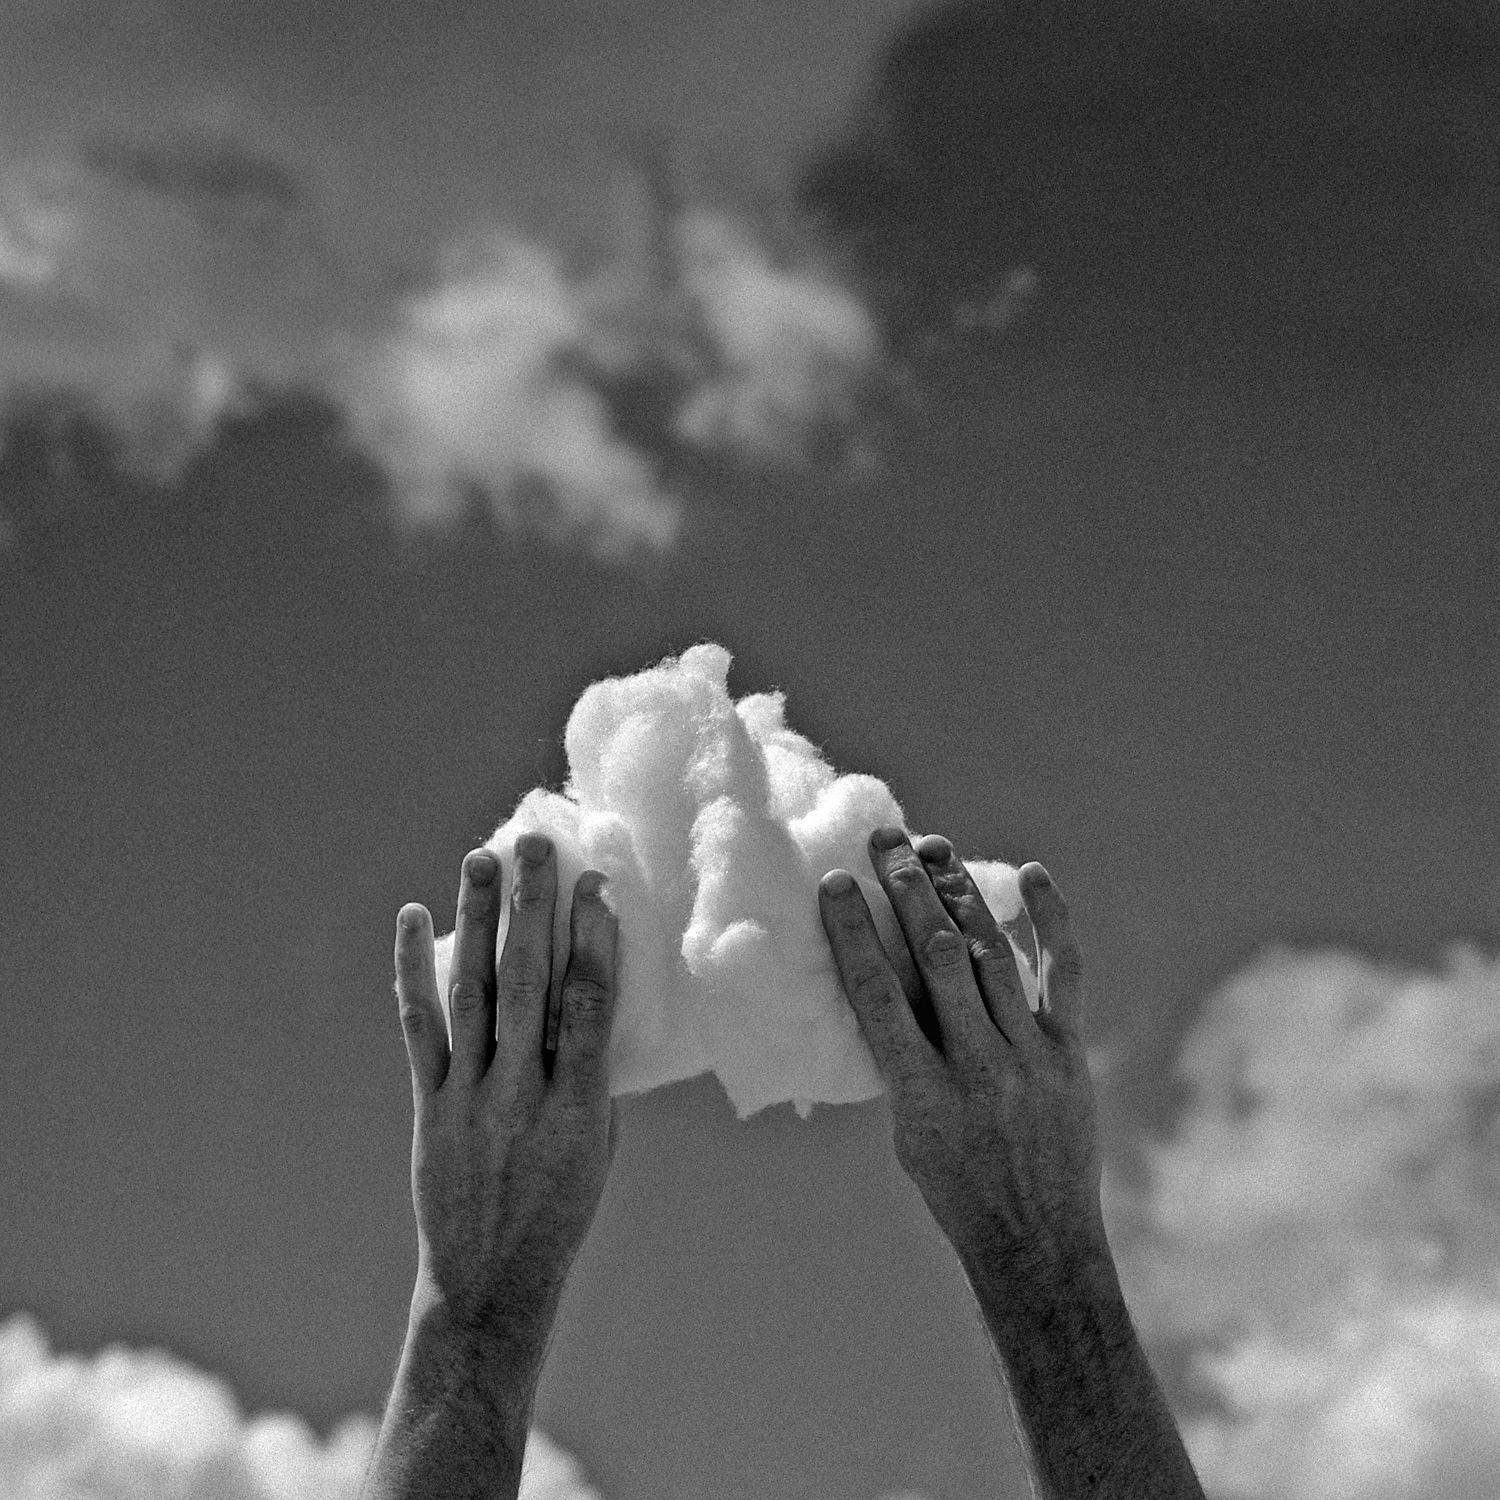 Clouds, 2004, archival pigment print on paper